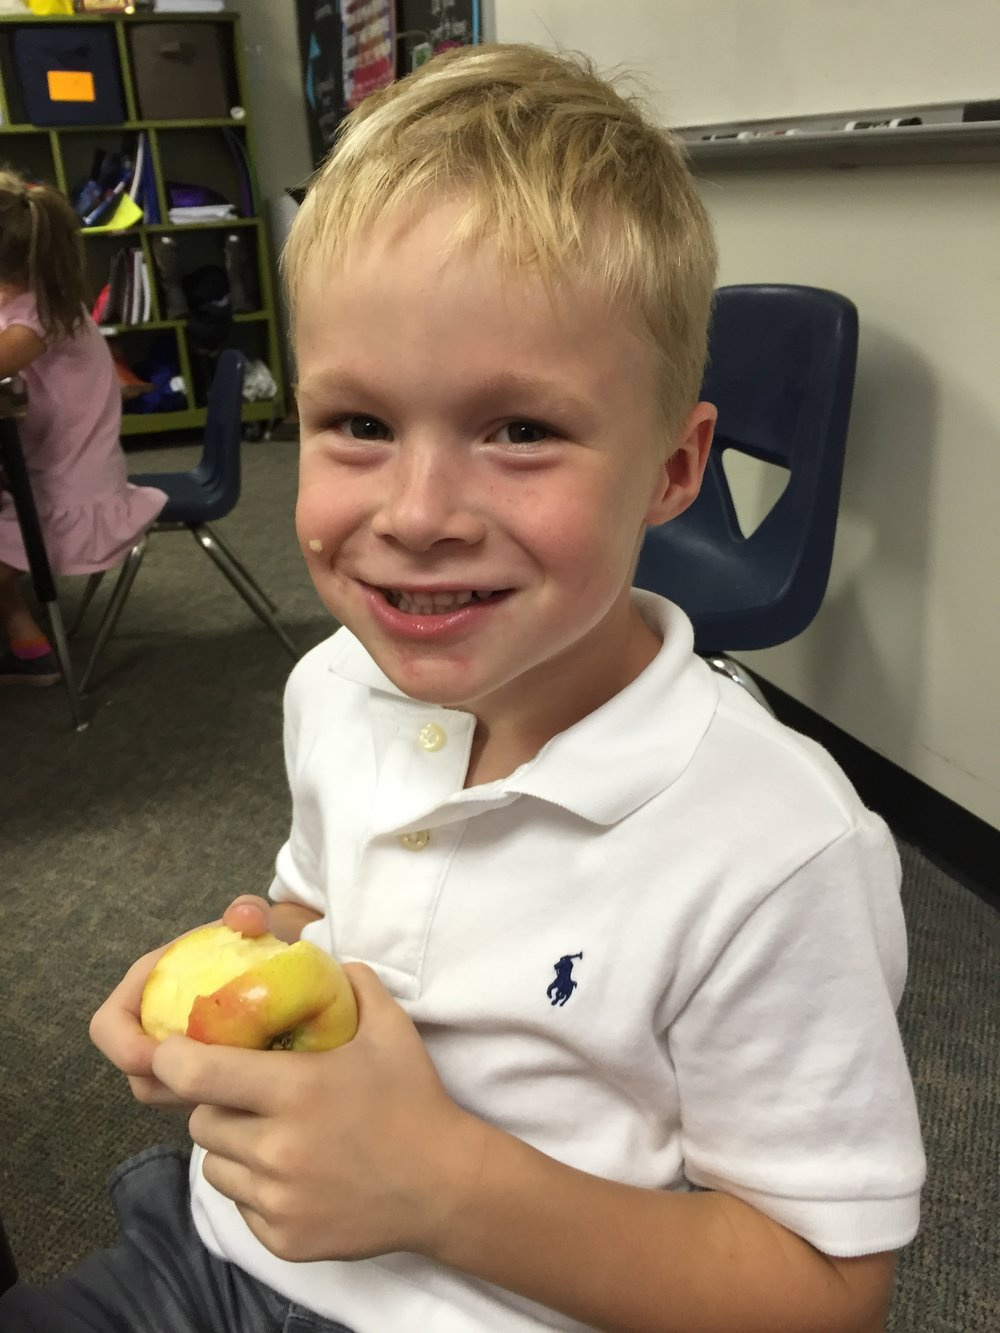 During our segment on Oral Health students learned that sticky, gummy, sweet snacks were bad for their teeth, but fresh fruits like this one are a great natural tooth cleaner!